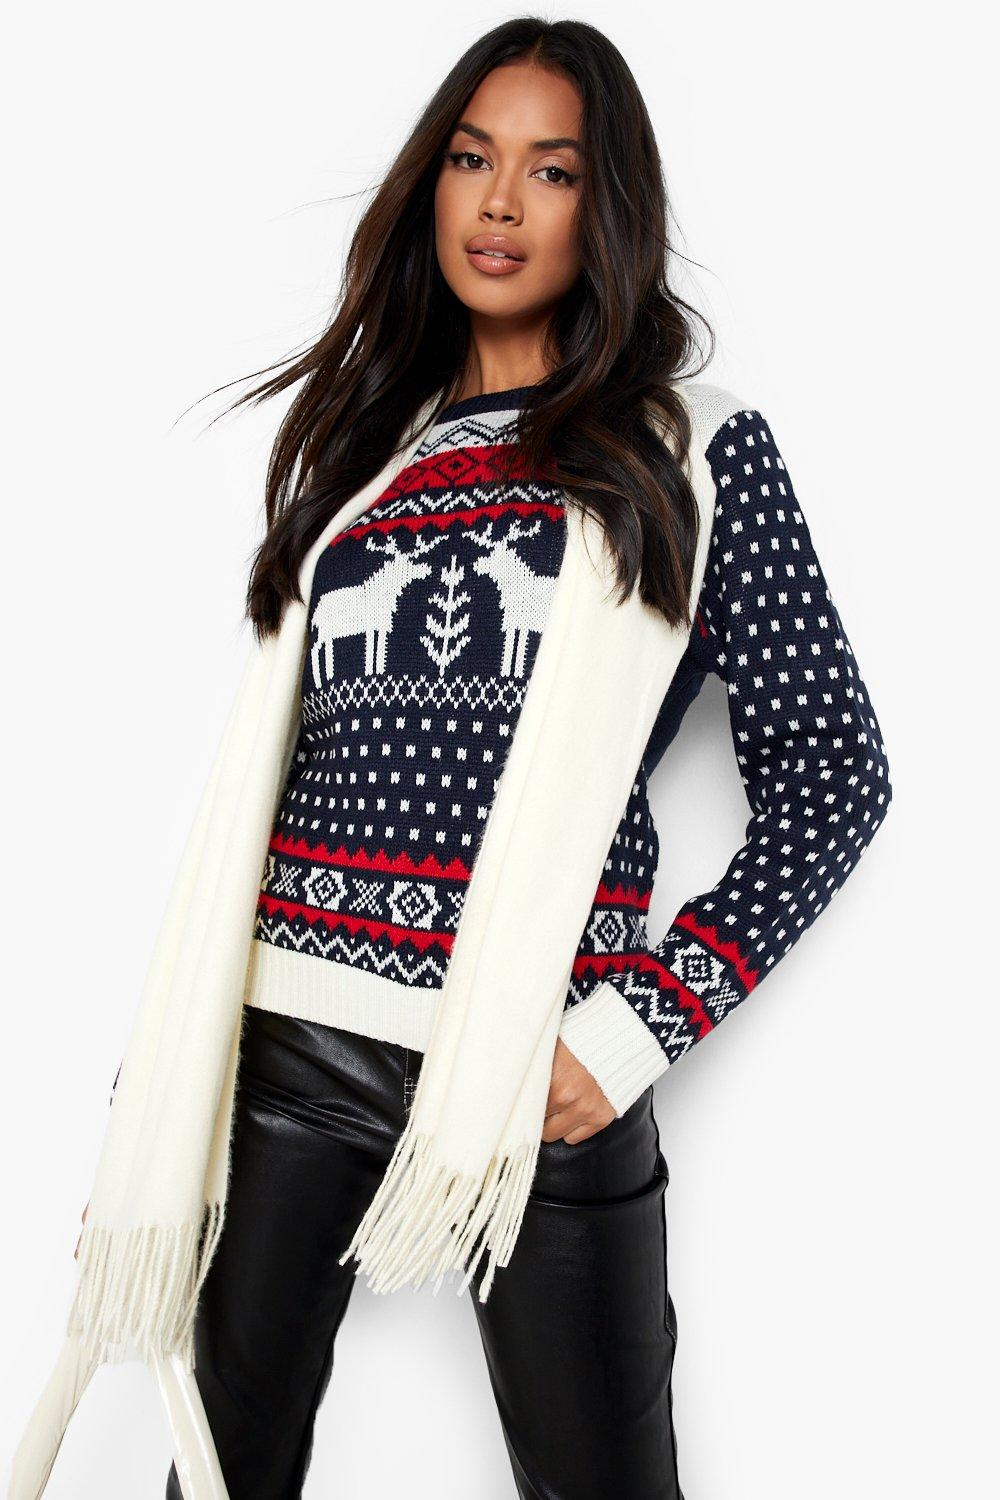 Vintage Sweaters, Retro Sweaters & Cardigan Womens Aztec Fairisle Reindeer Christmas Sweater - Navy - M $15.20 AT vintagedancer.com